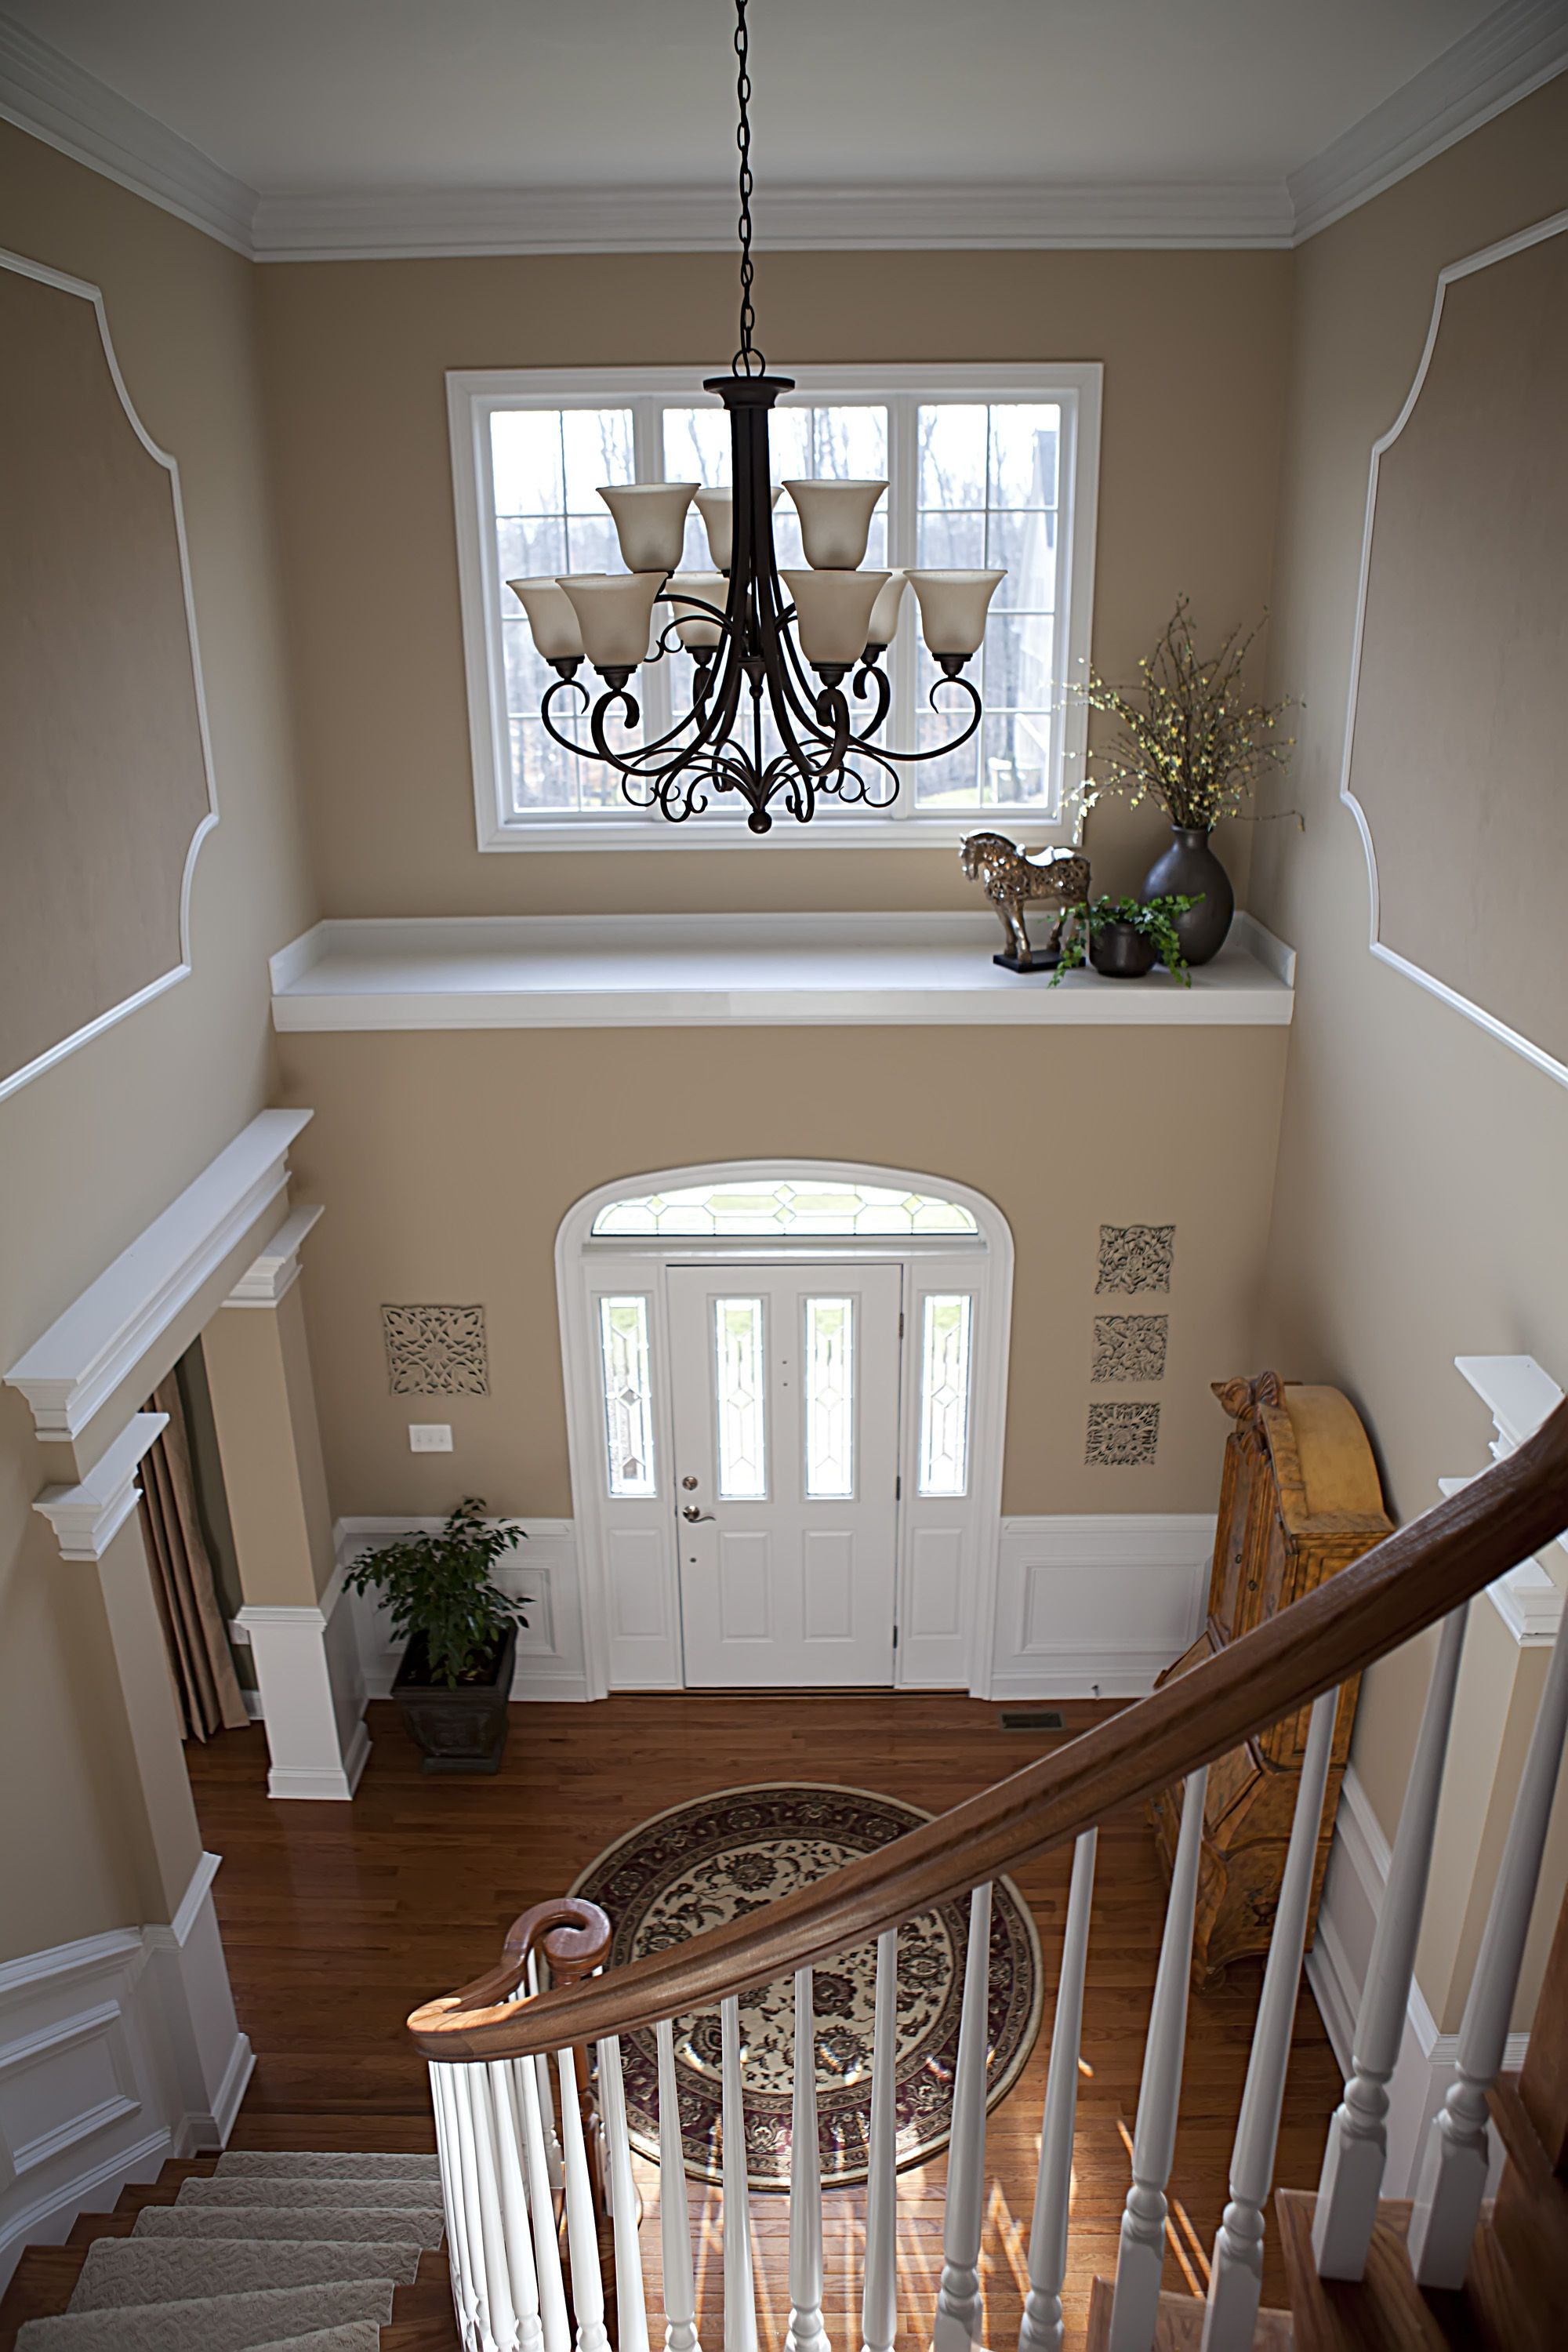 Home Foyer Decorating Ideas A Warm Inviting Entrance.hsm Susie's Dream House  Pinterest